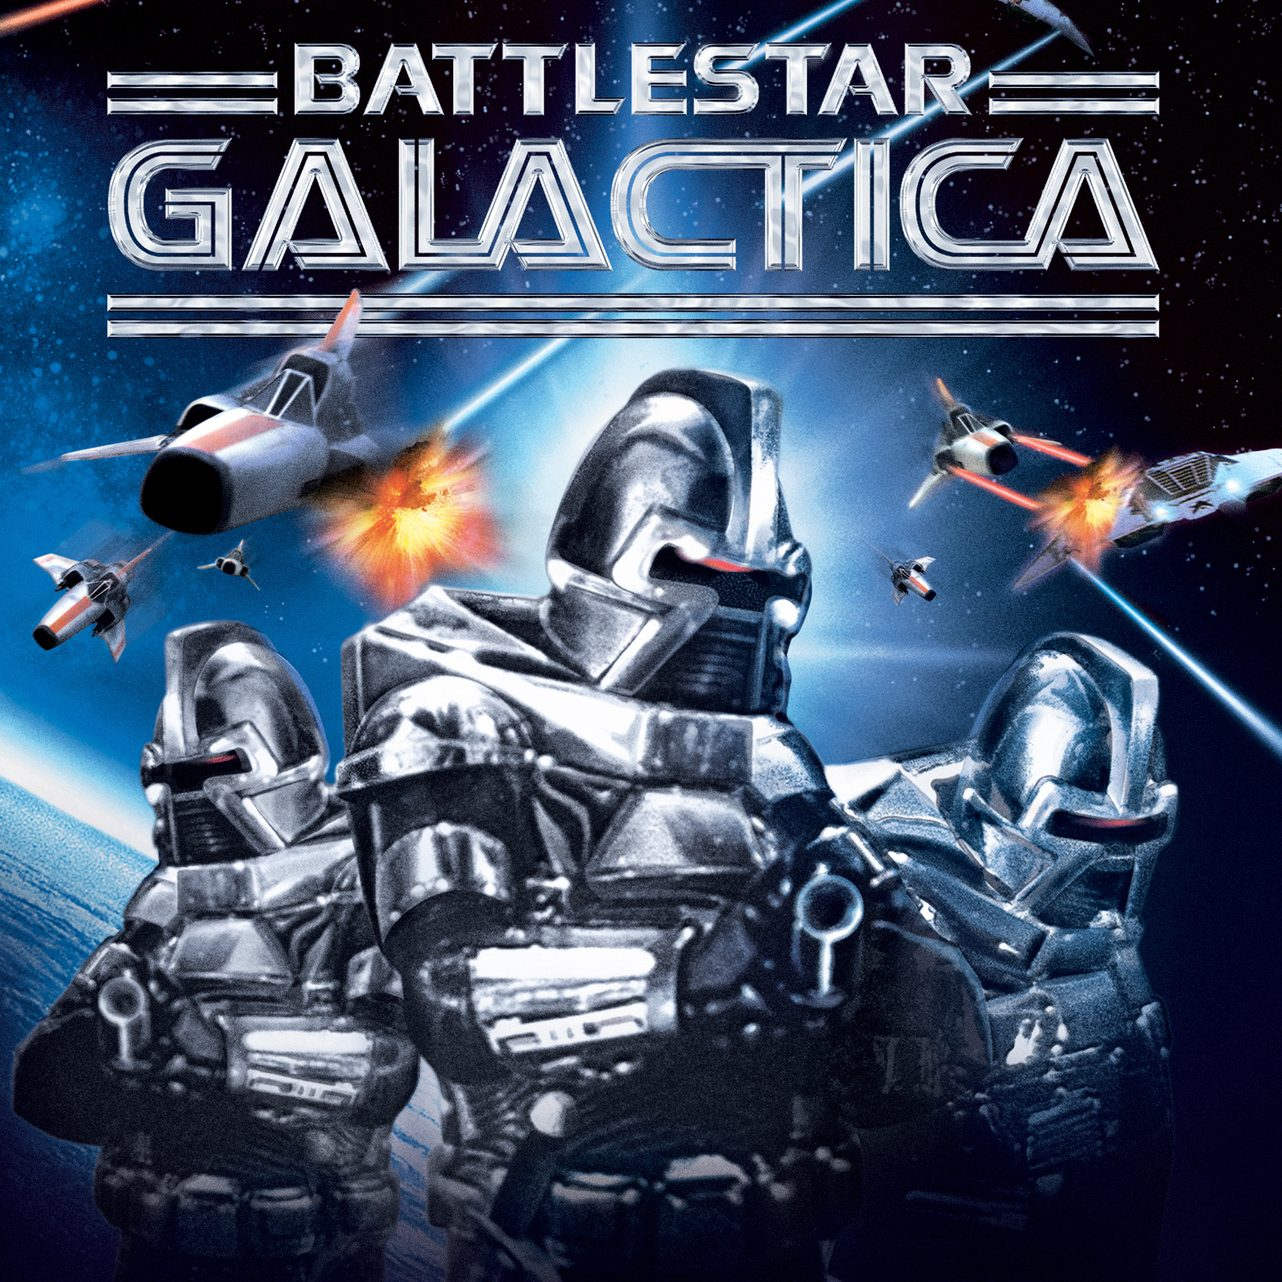 118307257 1300x1733 e1602863243954 20 Things You Probably Didn't Know About The Original Battlestar Galactica